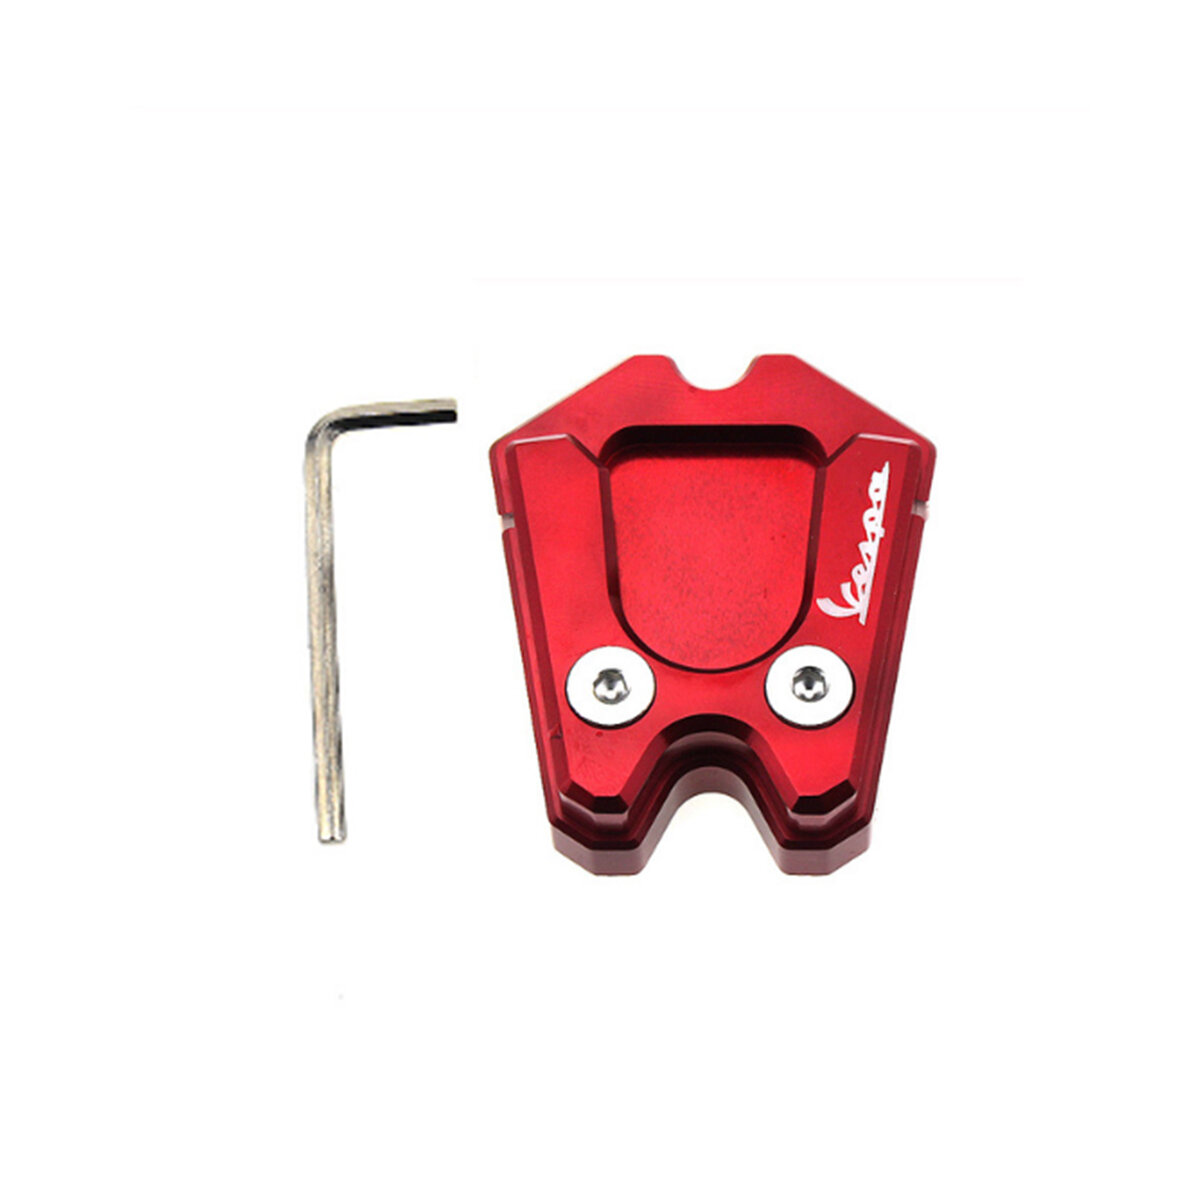 Motorcycle Kickstand Foot Side Stand Enlarge Extension Pad For Vespa Gts Gtv